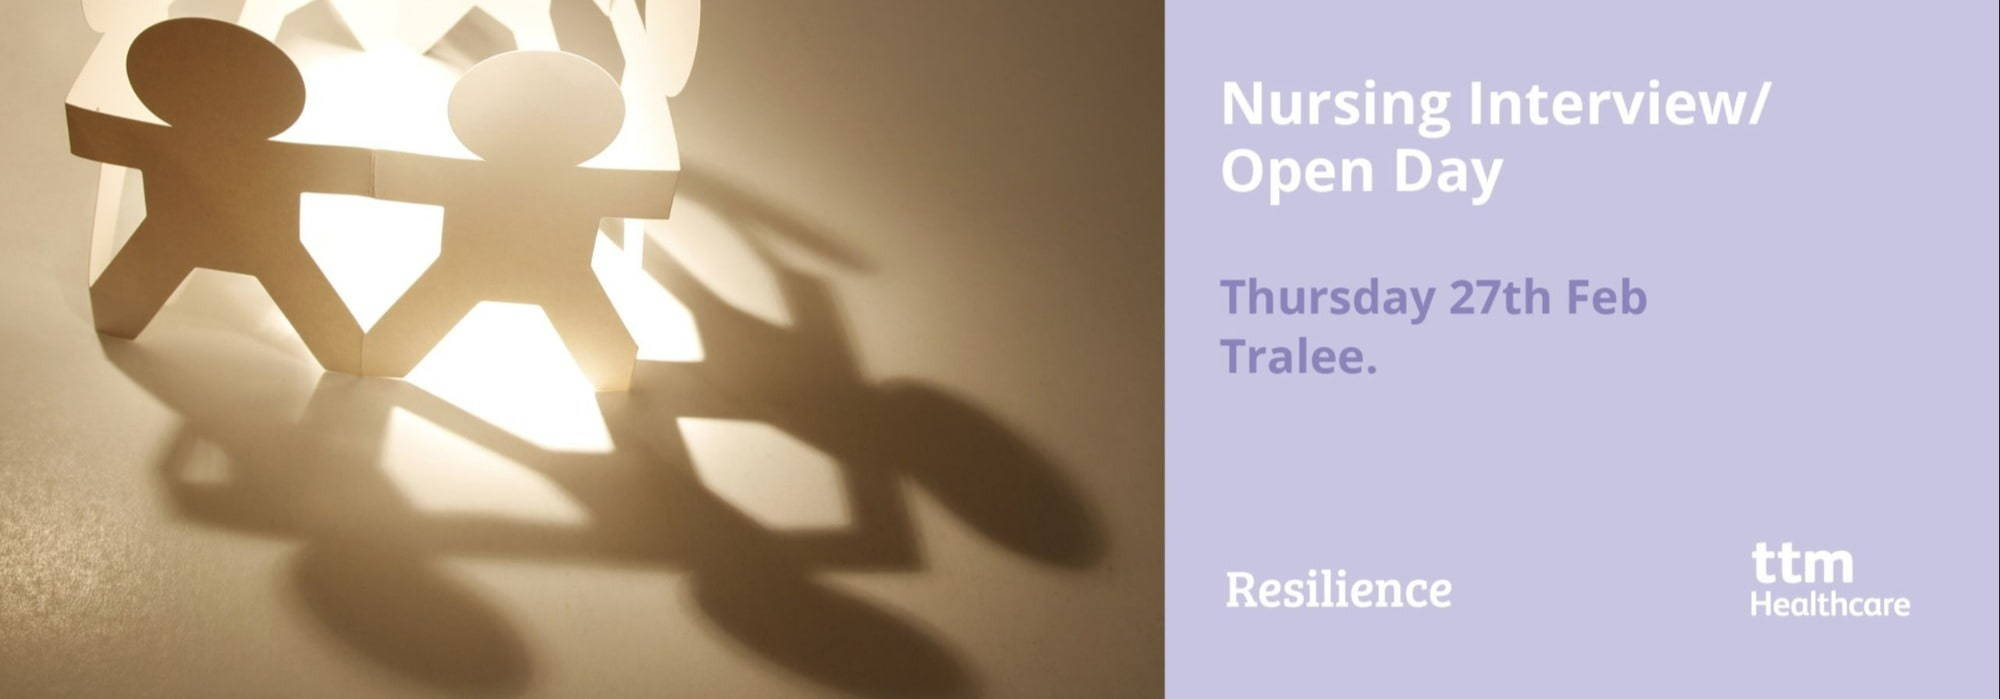 Nursing Open Day